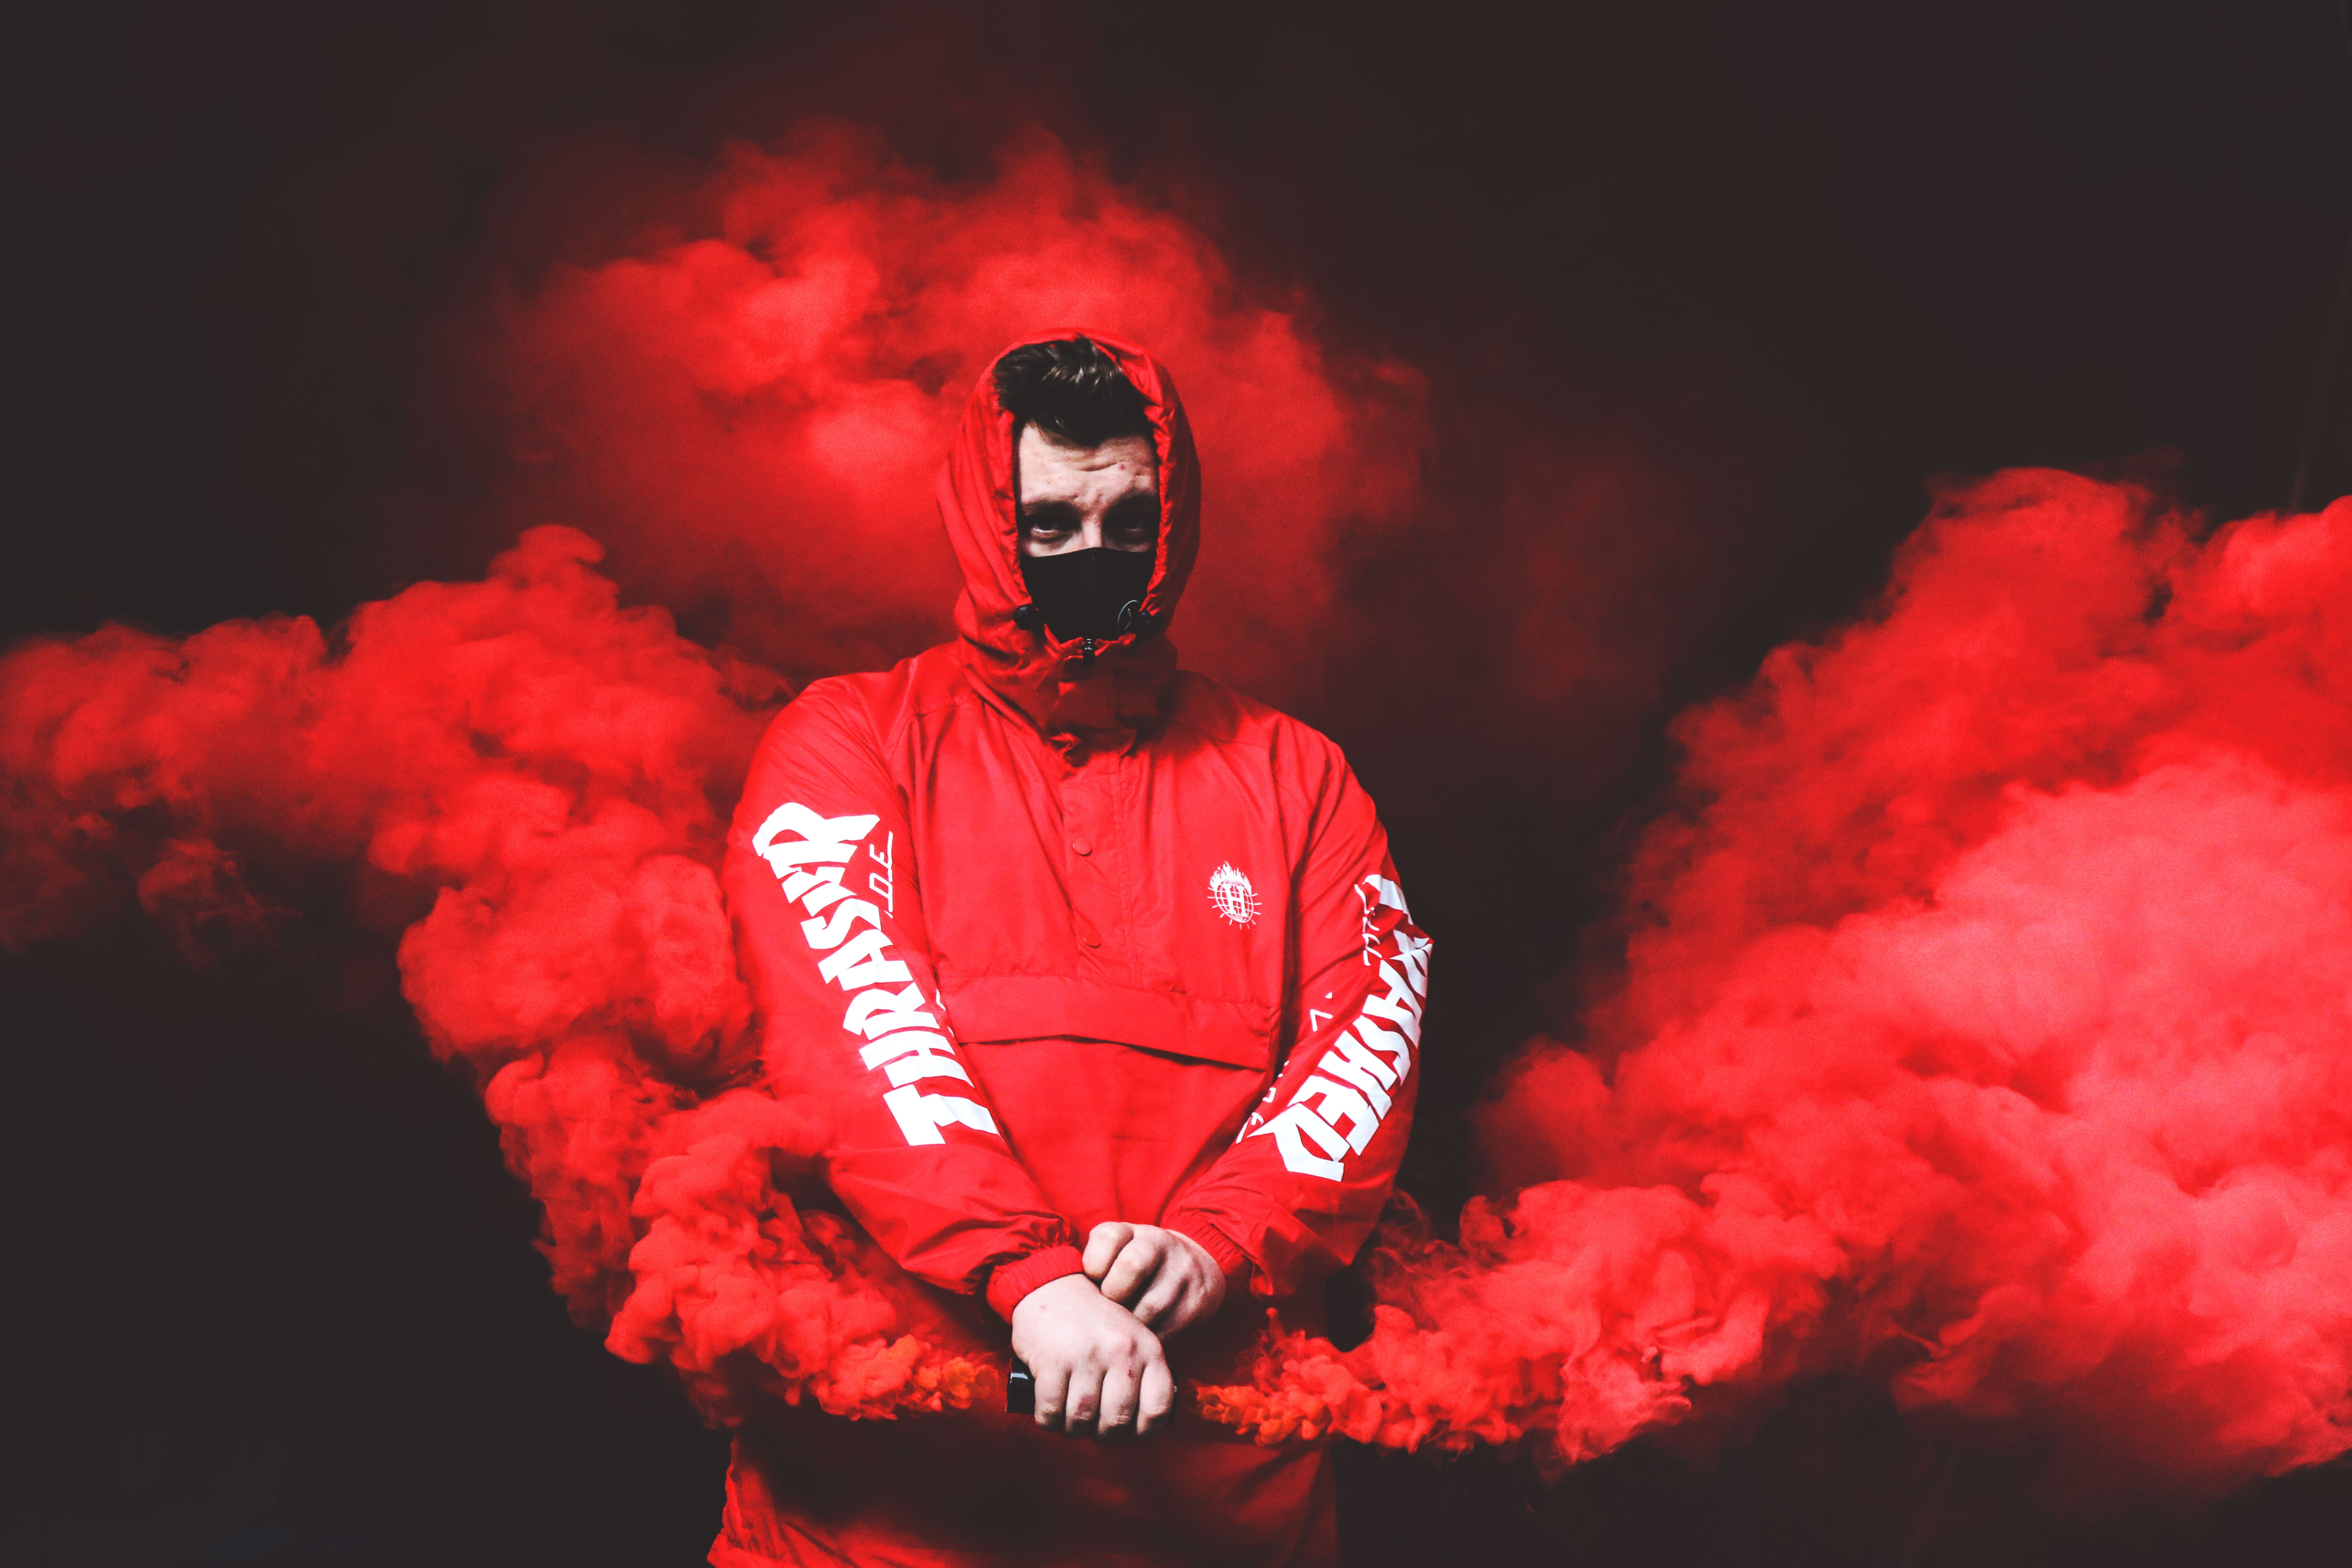 99383 download wallpaper Miscellanea, Miscellaneous, Human, Person, Mask, Hood, Smoke screensavers and pictures for free